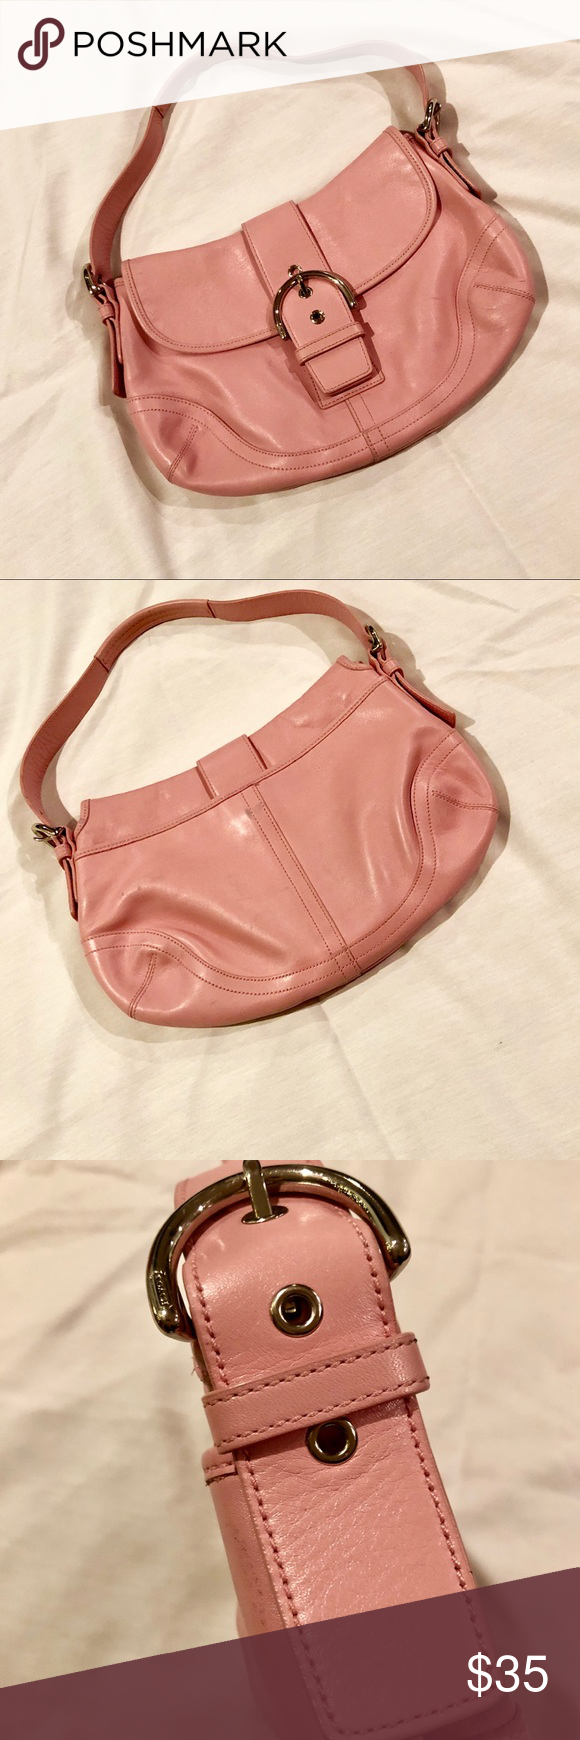 Coach Pink Leather Purse In great preowner Condition